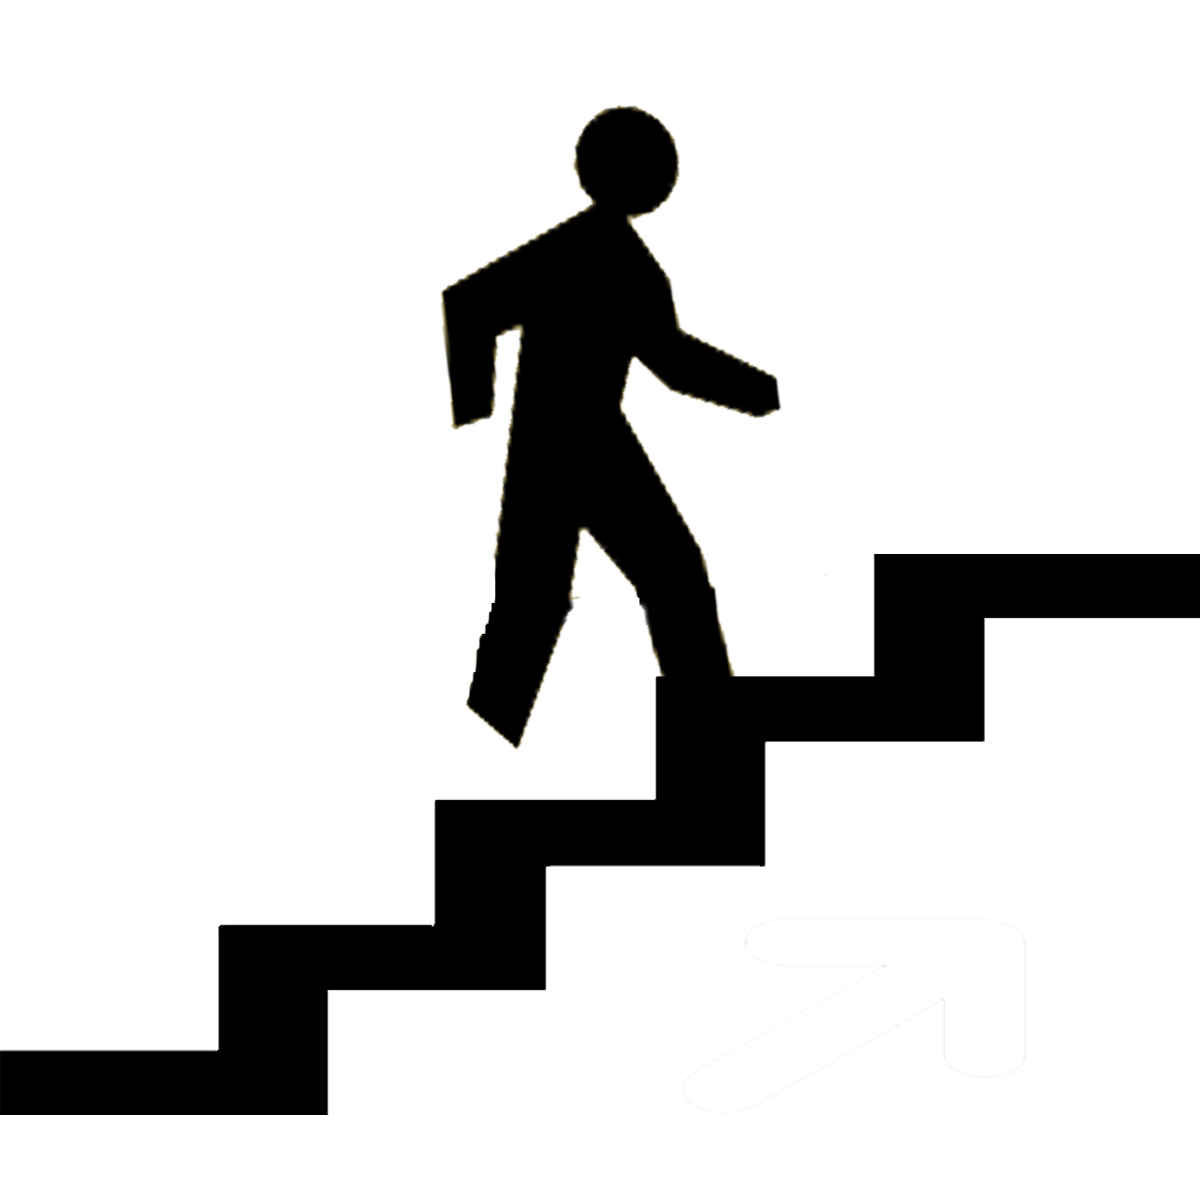 13 Step Icons Free Images - Stick Figure Climbing Stairs